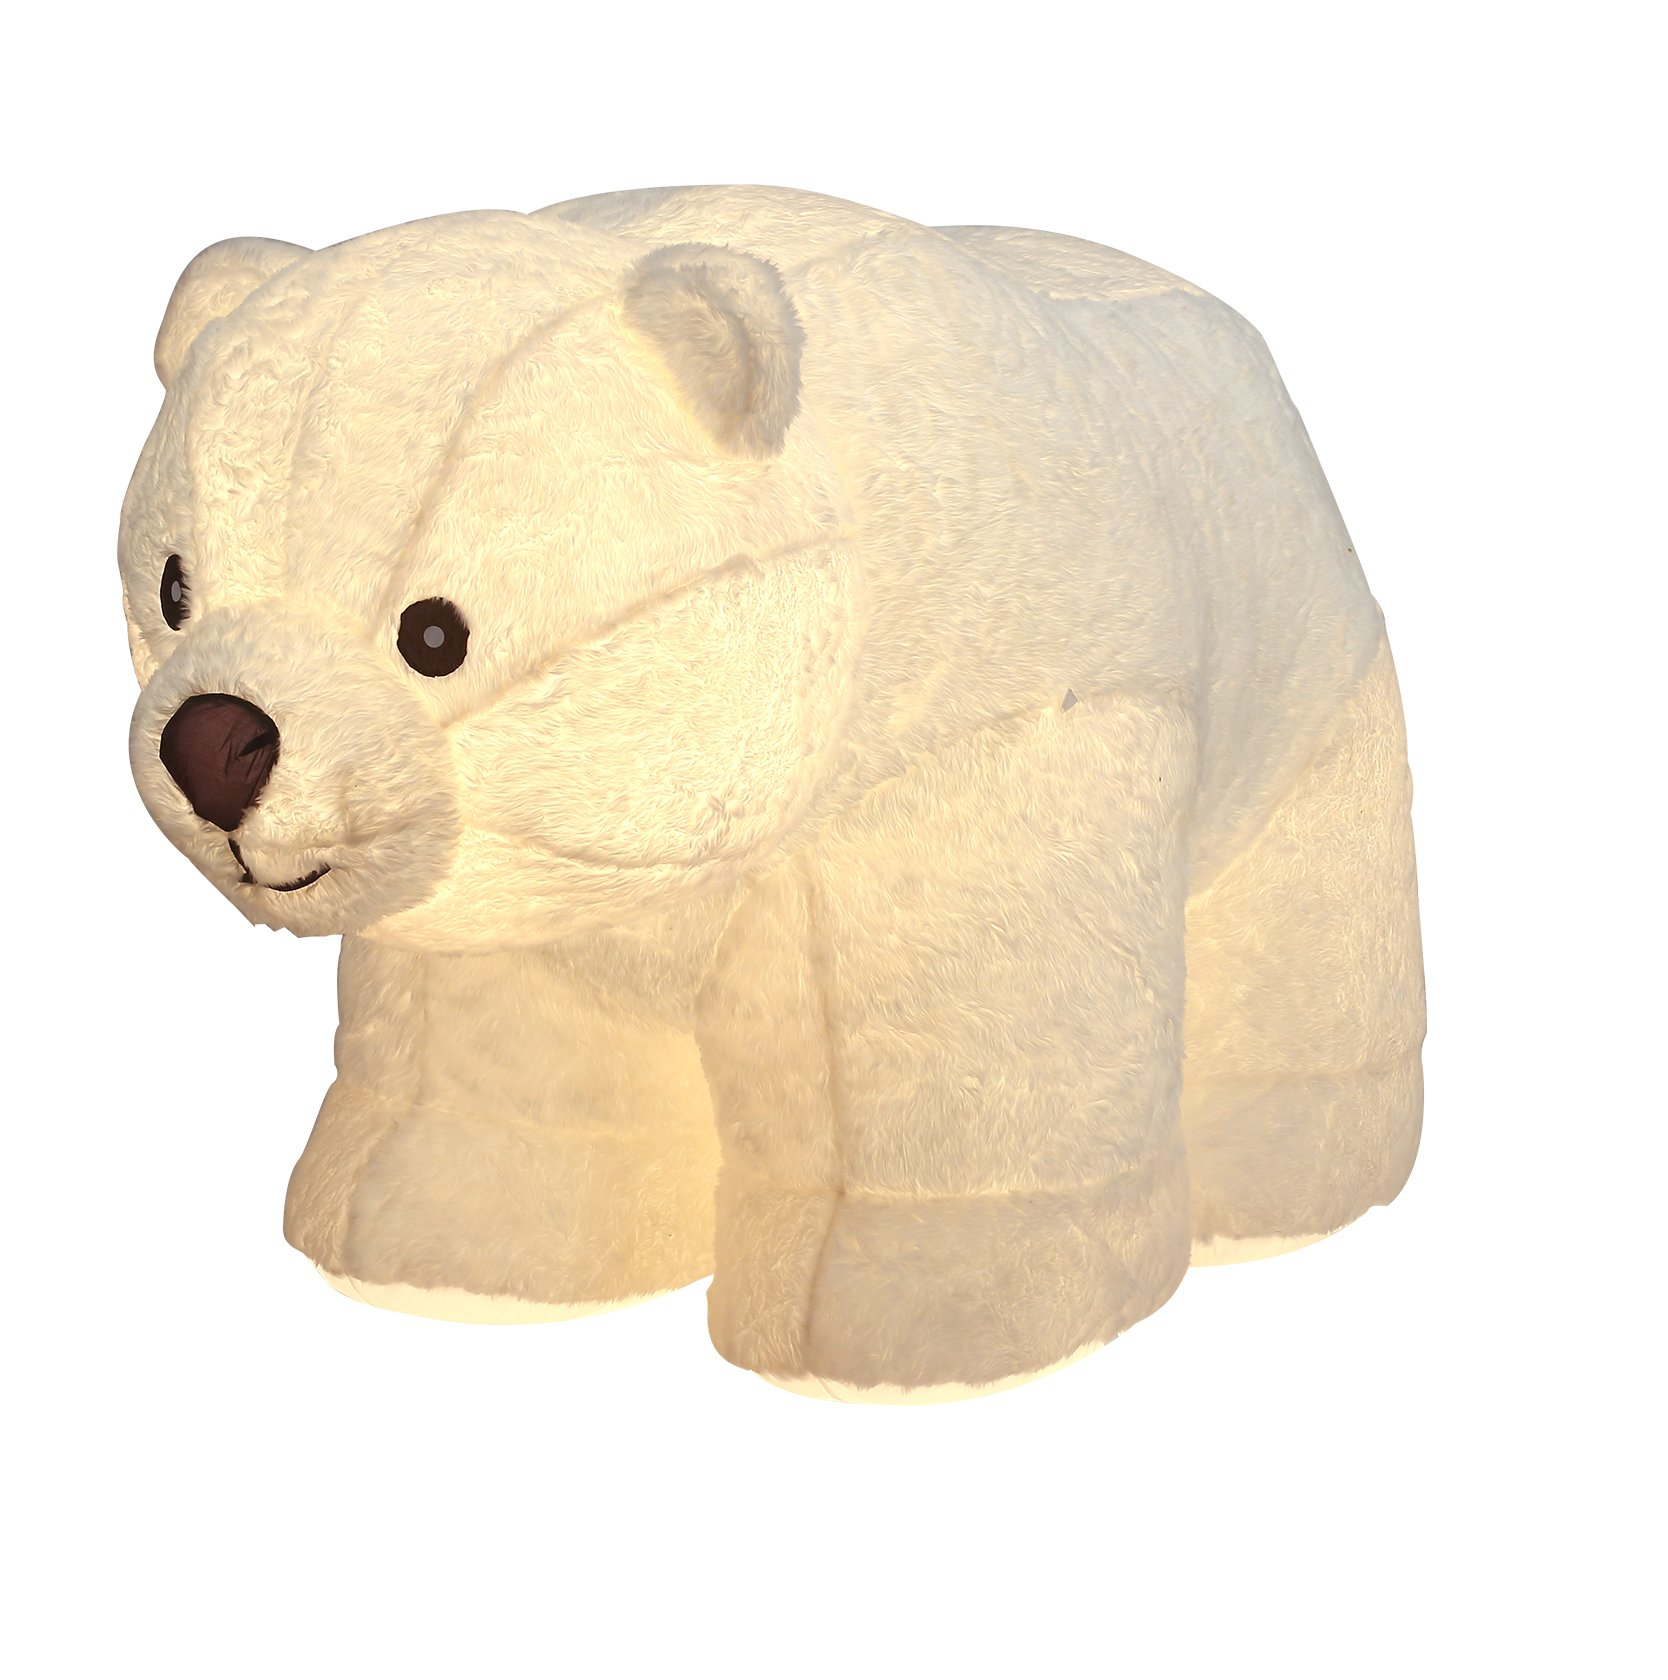 6.5FT Inflatable Standing Plush Polar Bear Indoor Outdoor Christmas Holiday Decorations